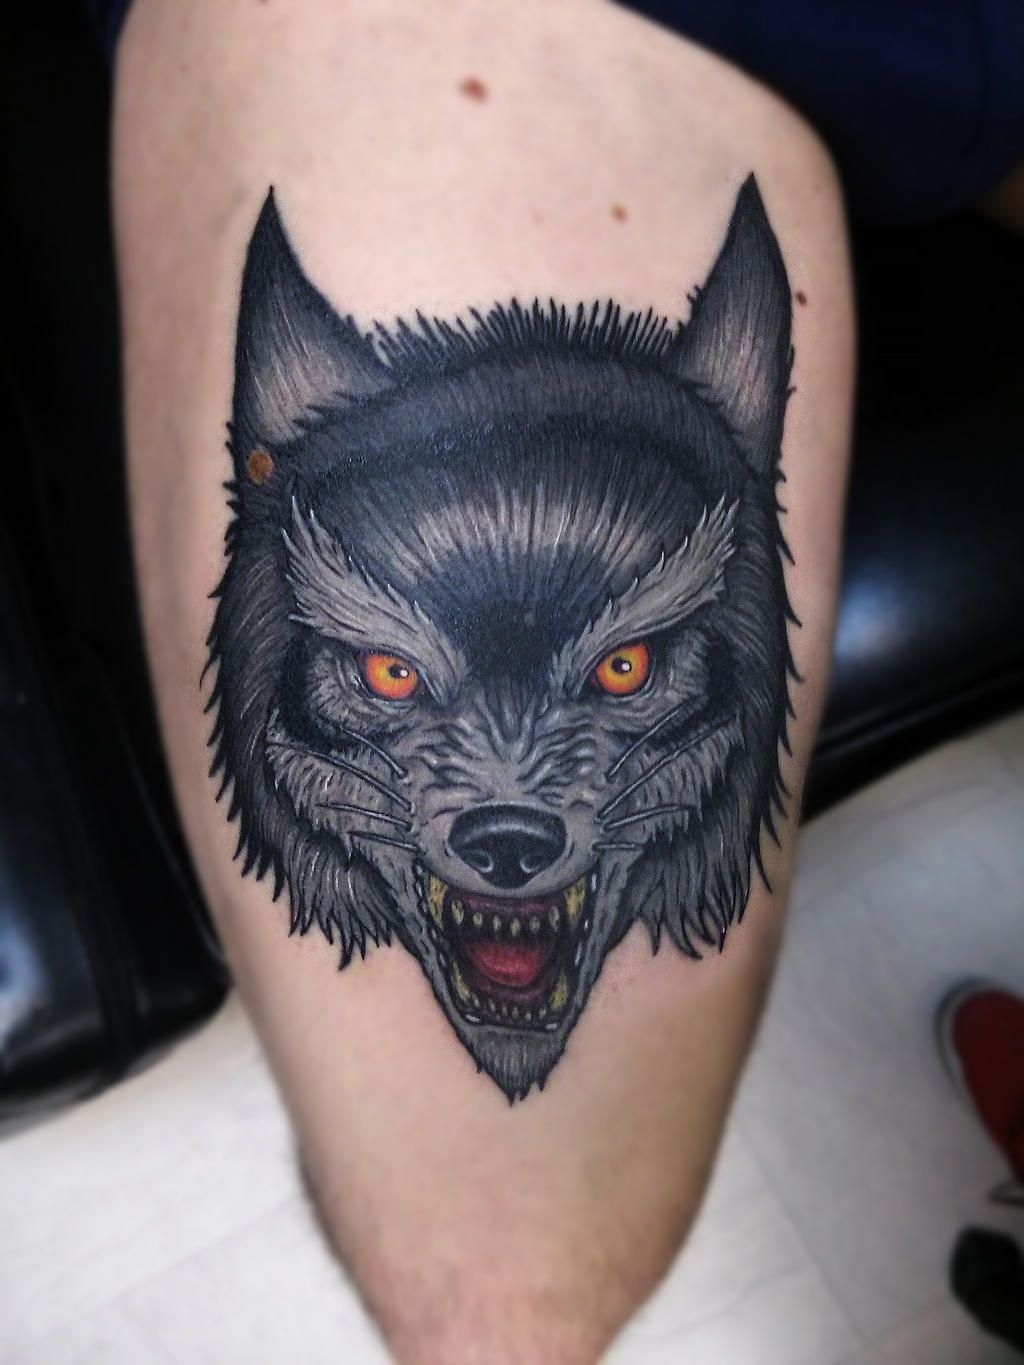 Traditional wolf tattoo meaning